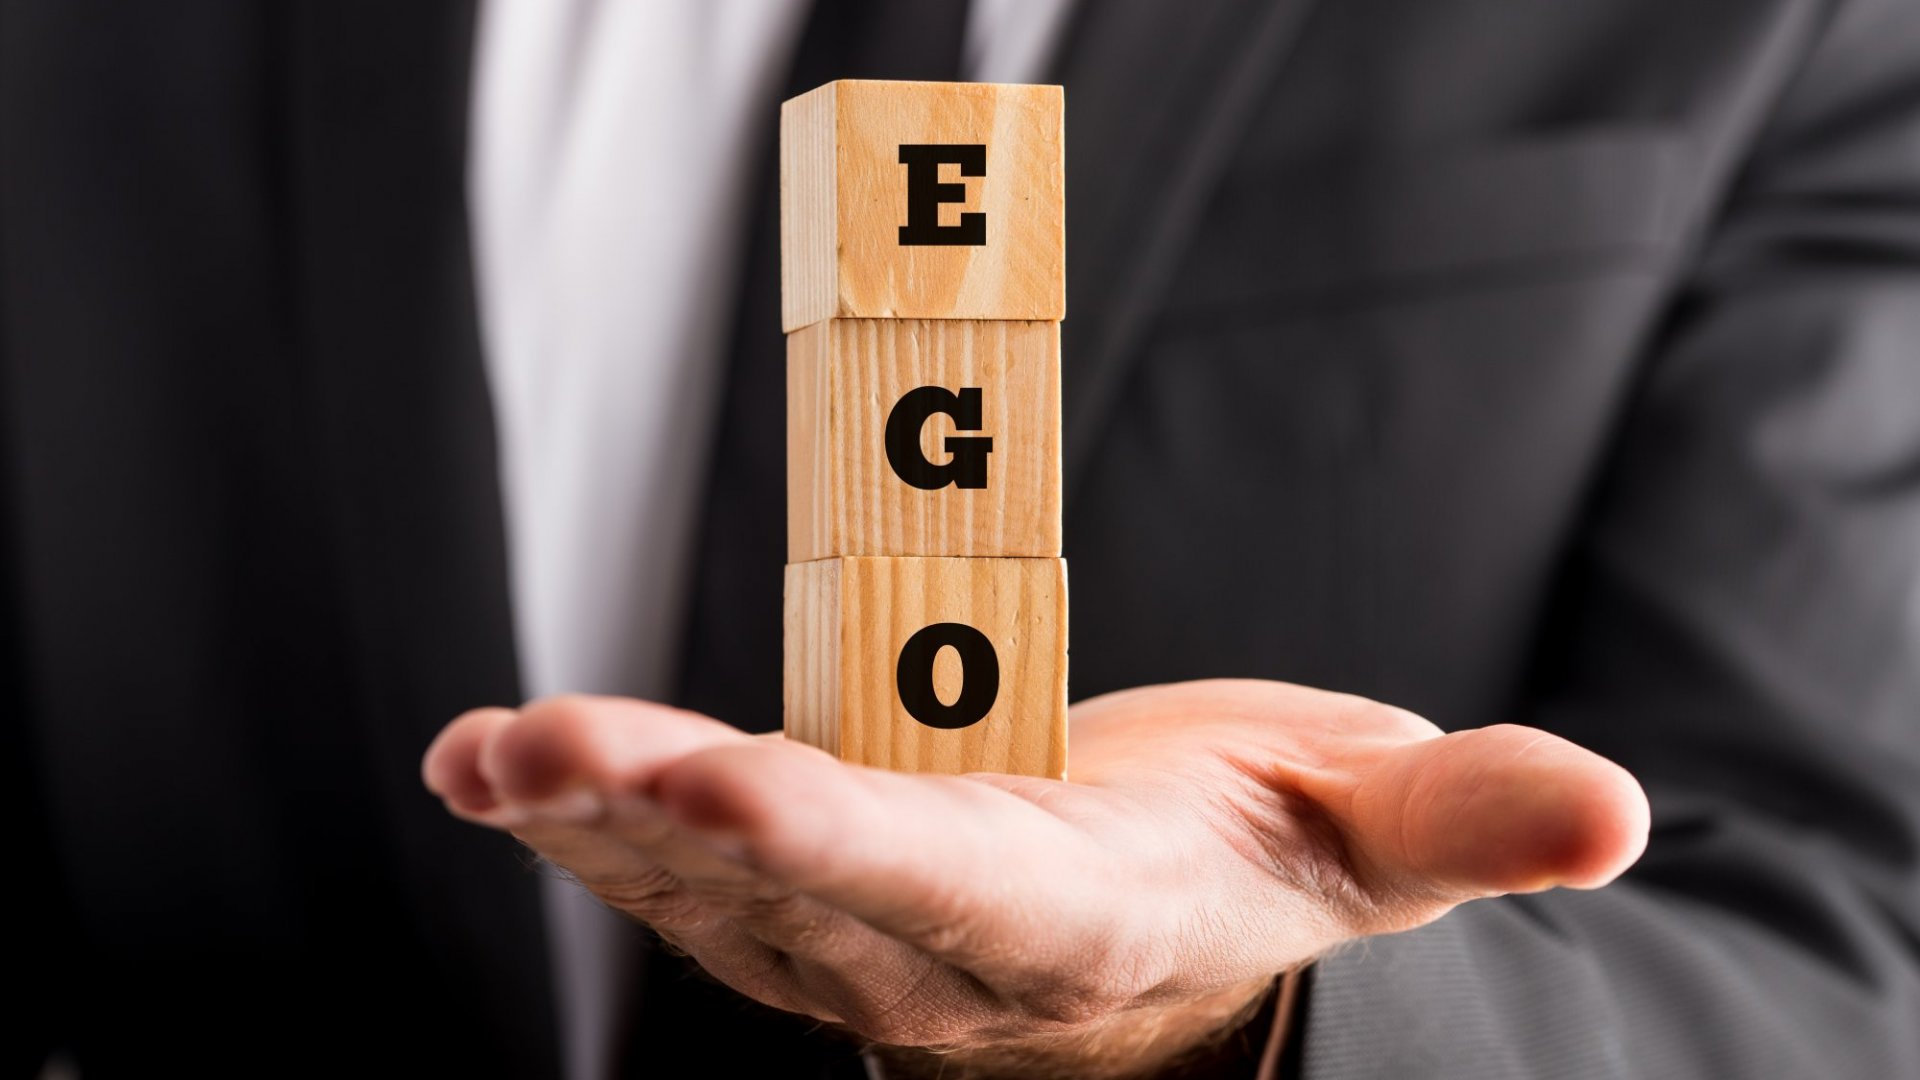 The Biggest Challenge to Growing as a Leader Is Ego. Here's How to Keep Yours in Check